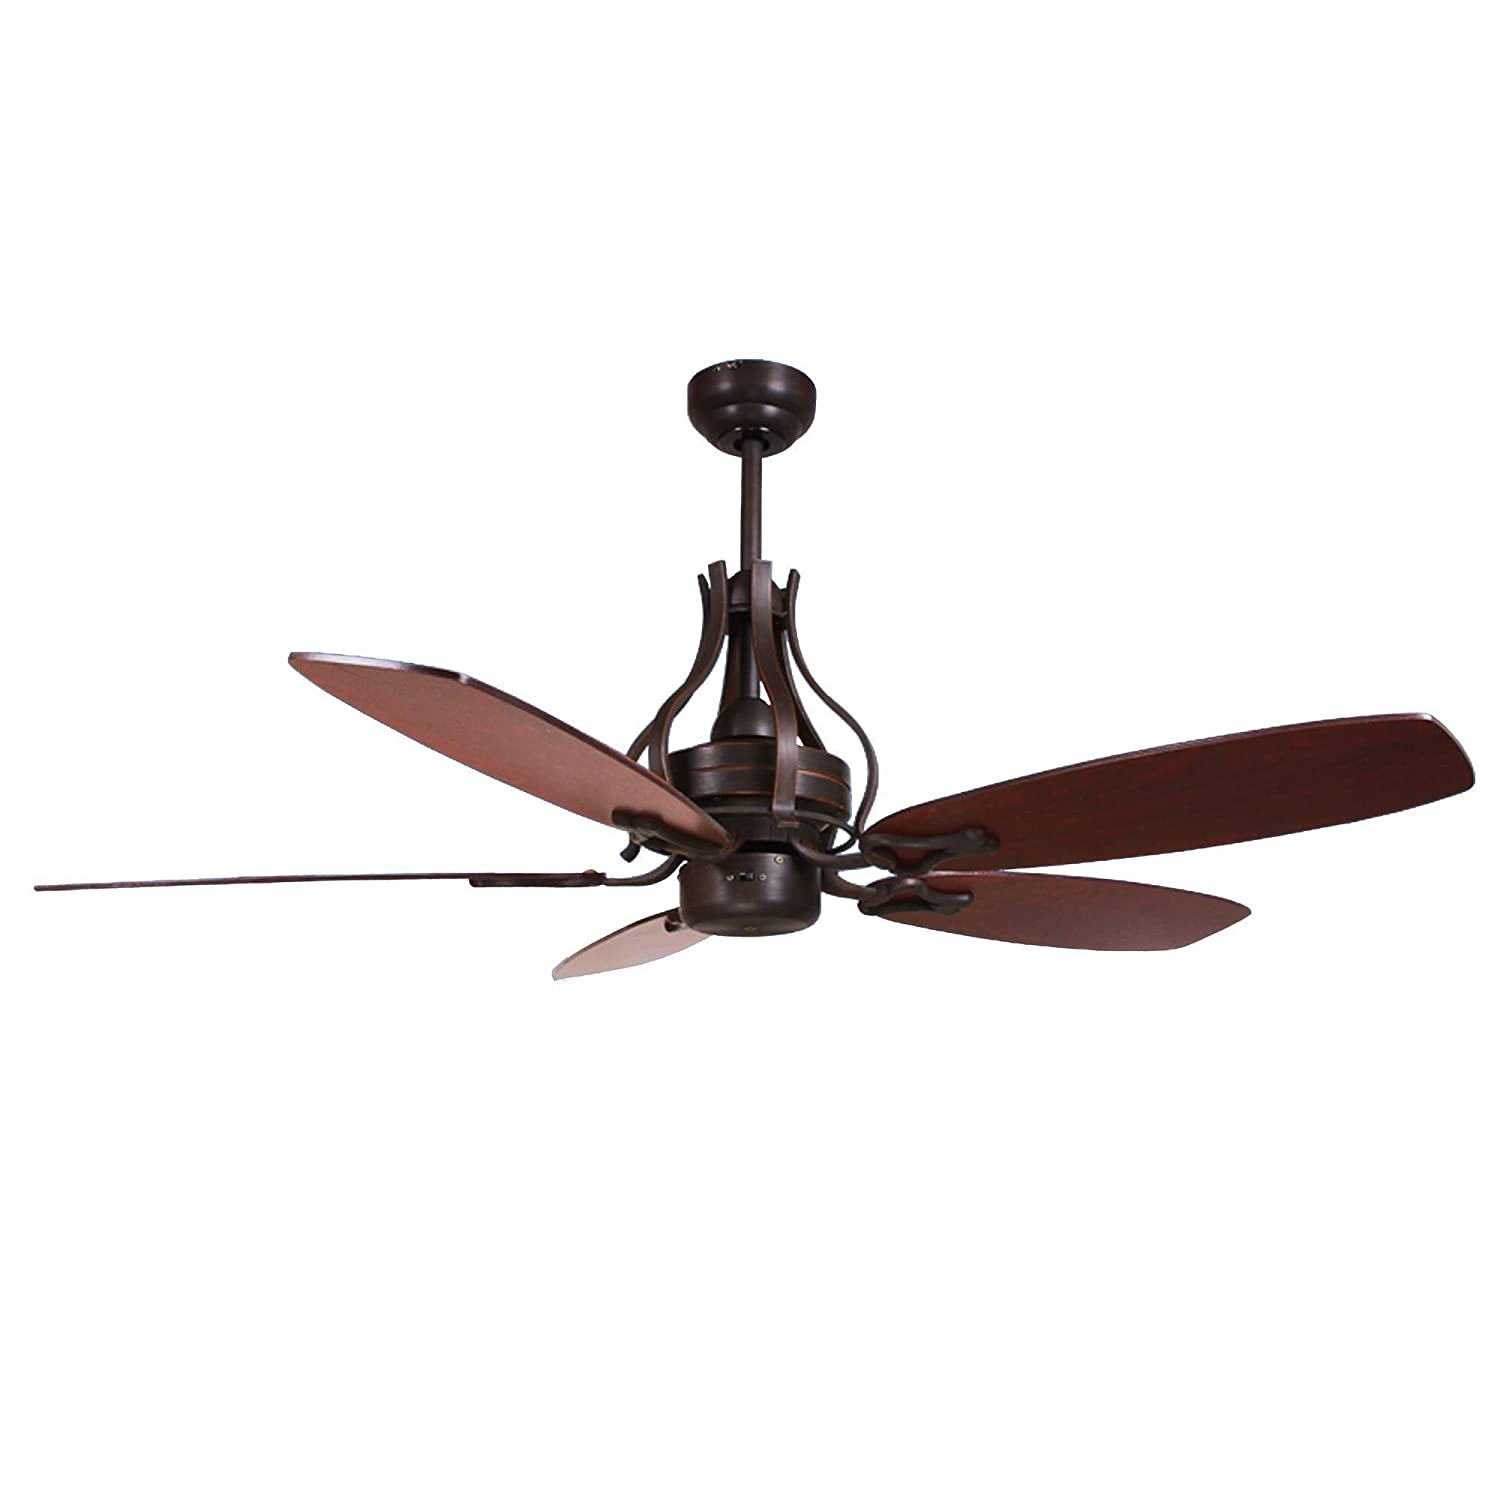 Yosemite Home Decor WASHBURN-ORB-NLK 52-Inch Ceiling Fan in Oil Rubbed Bronze Finish with 80-Inch Lead Wire, Oil Rubbed Bronze [並行輸入品] B01KBQRBN6